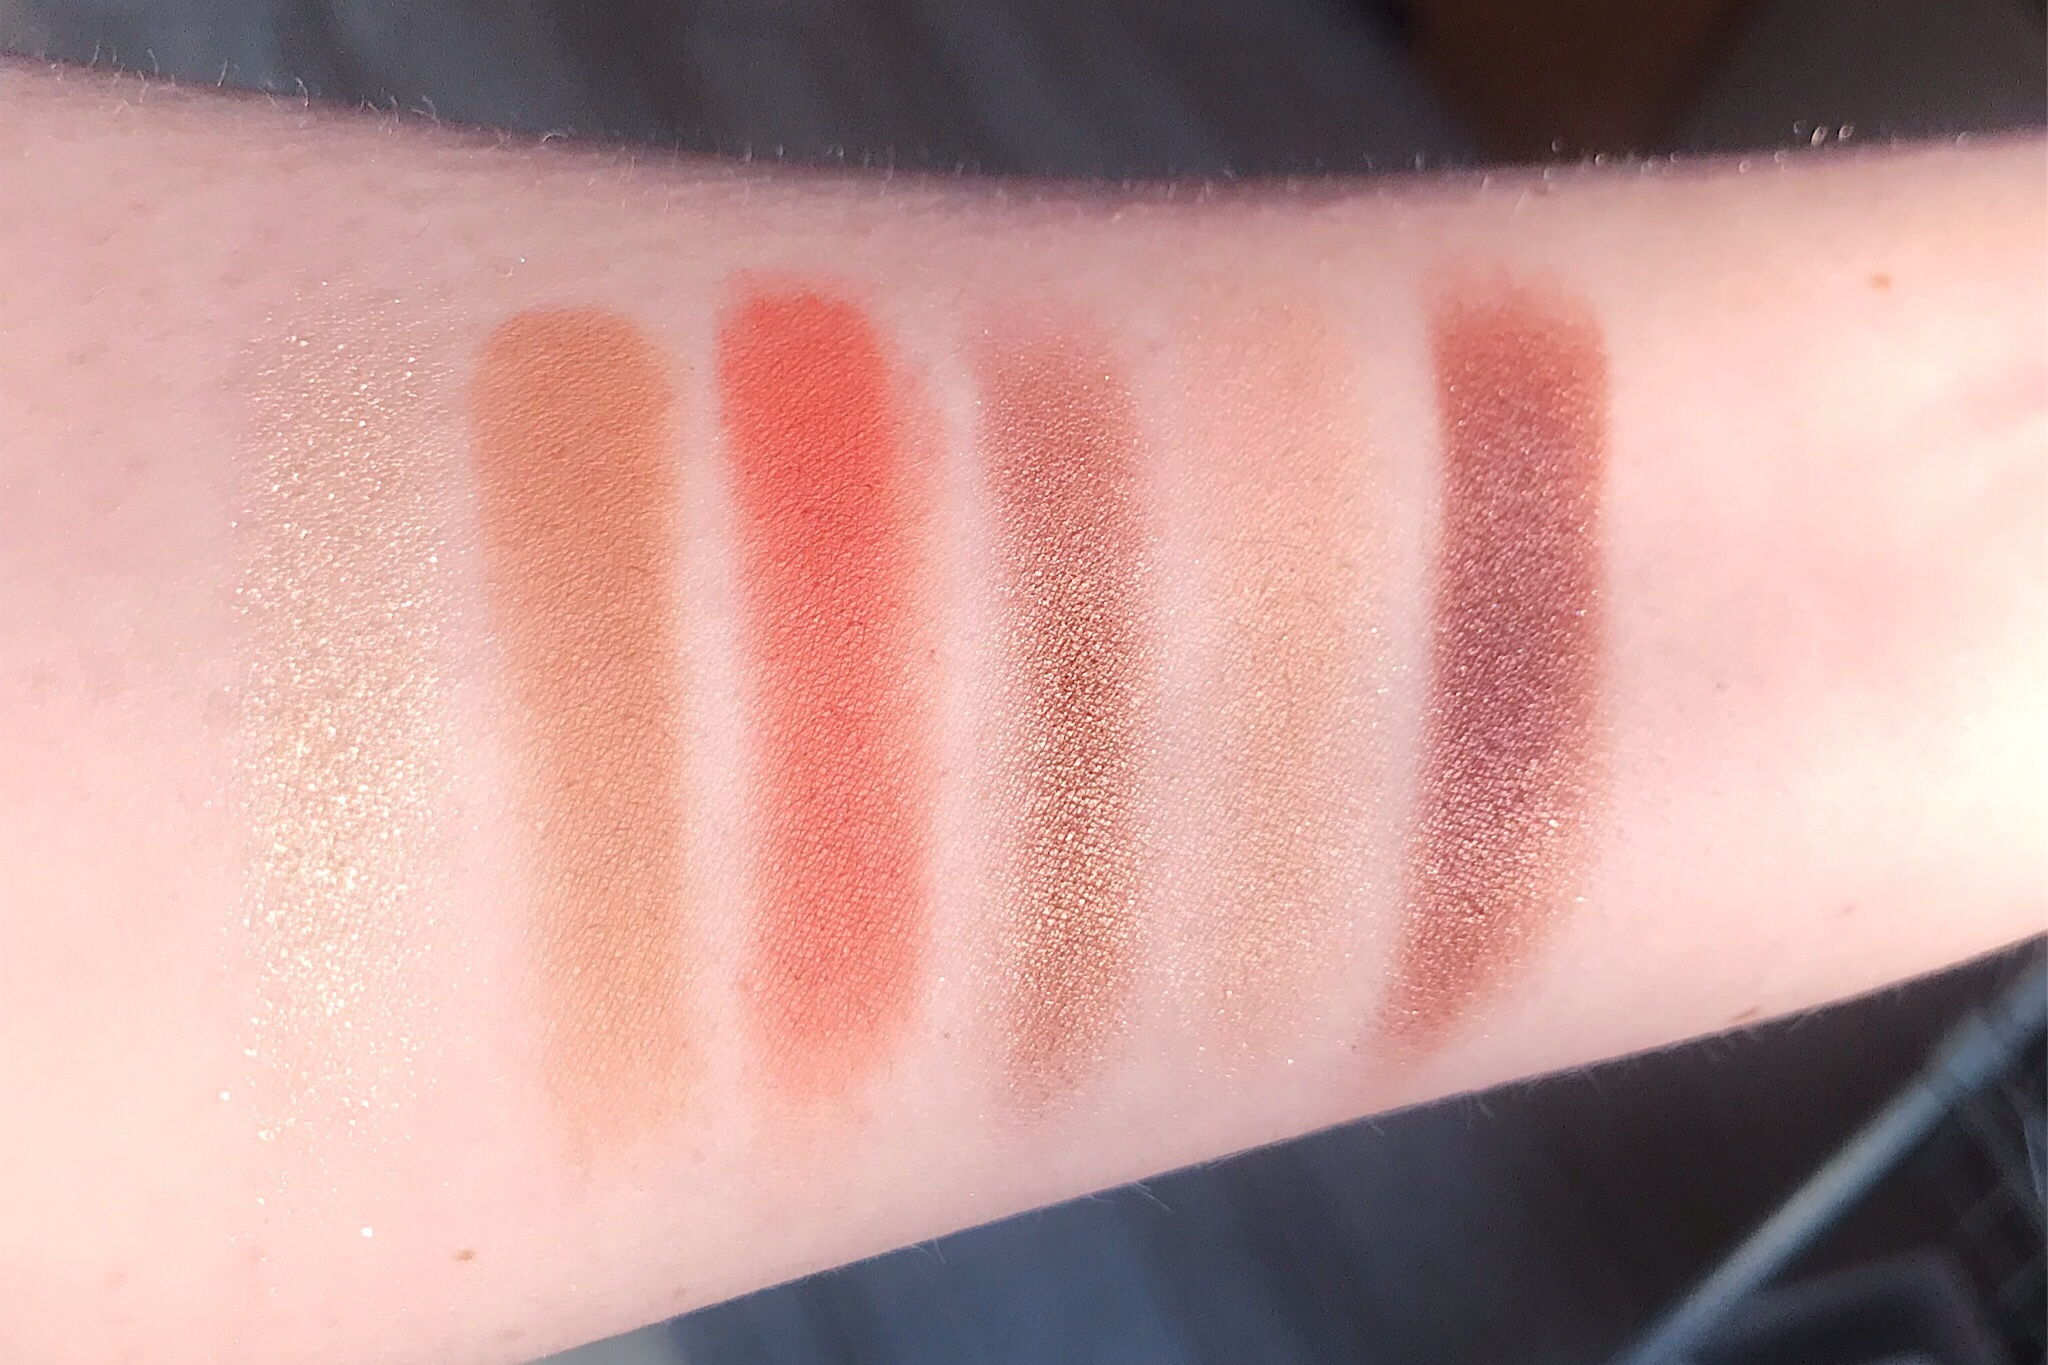 Milani+05+Earthly+Elements+Palette+Swatches.jpg